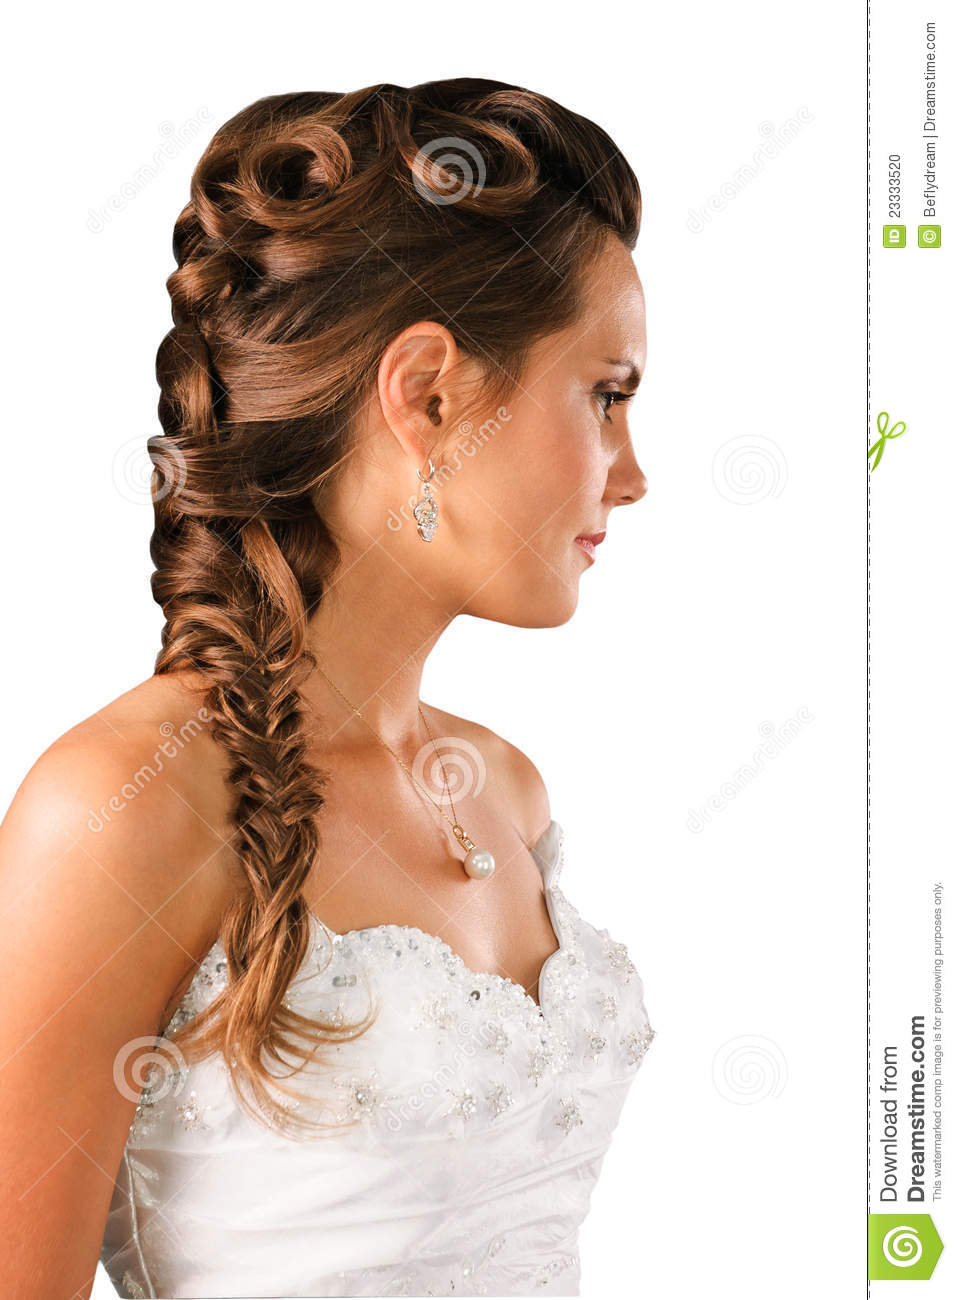 Bridal Hairdo Plate Isolated On White Stock Photo Image Of Face